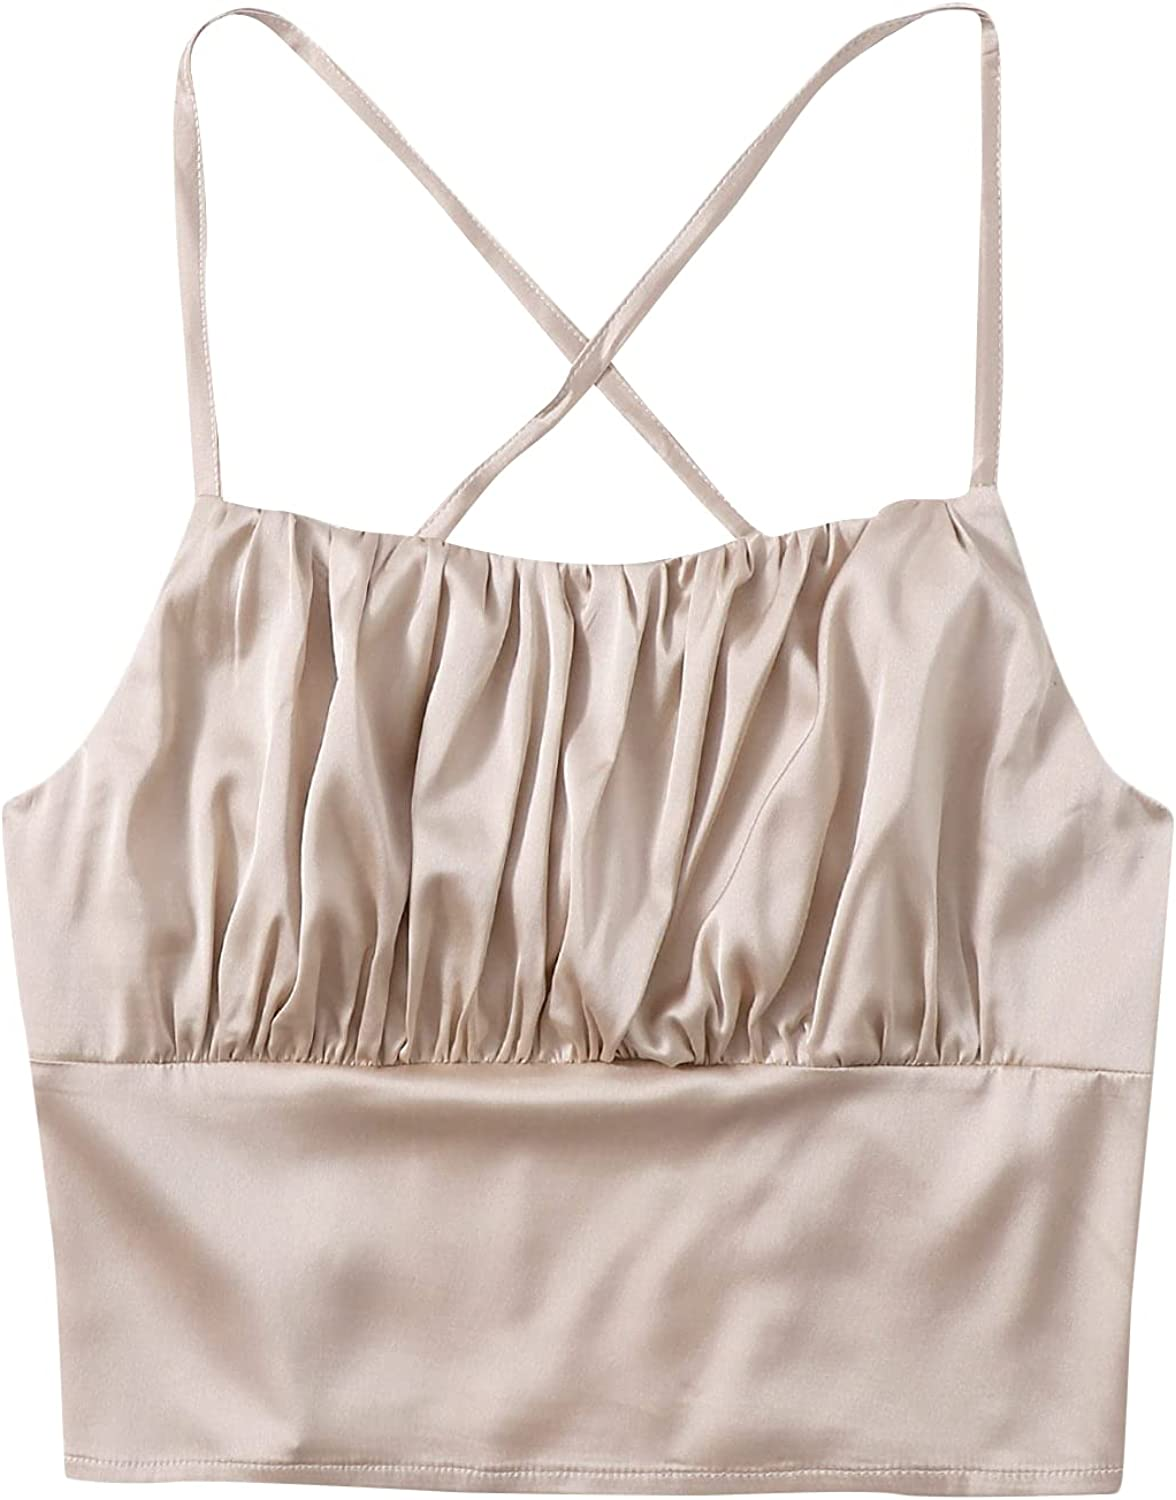 Milumia Women Criss Cross Backless Satin Cami Crop Top Spaghetti Strap Ruched Camisole